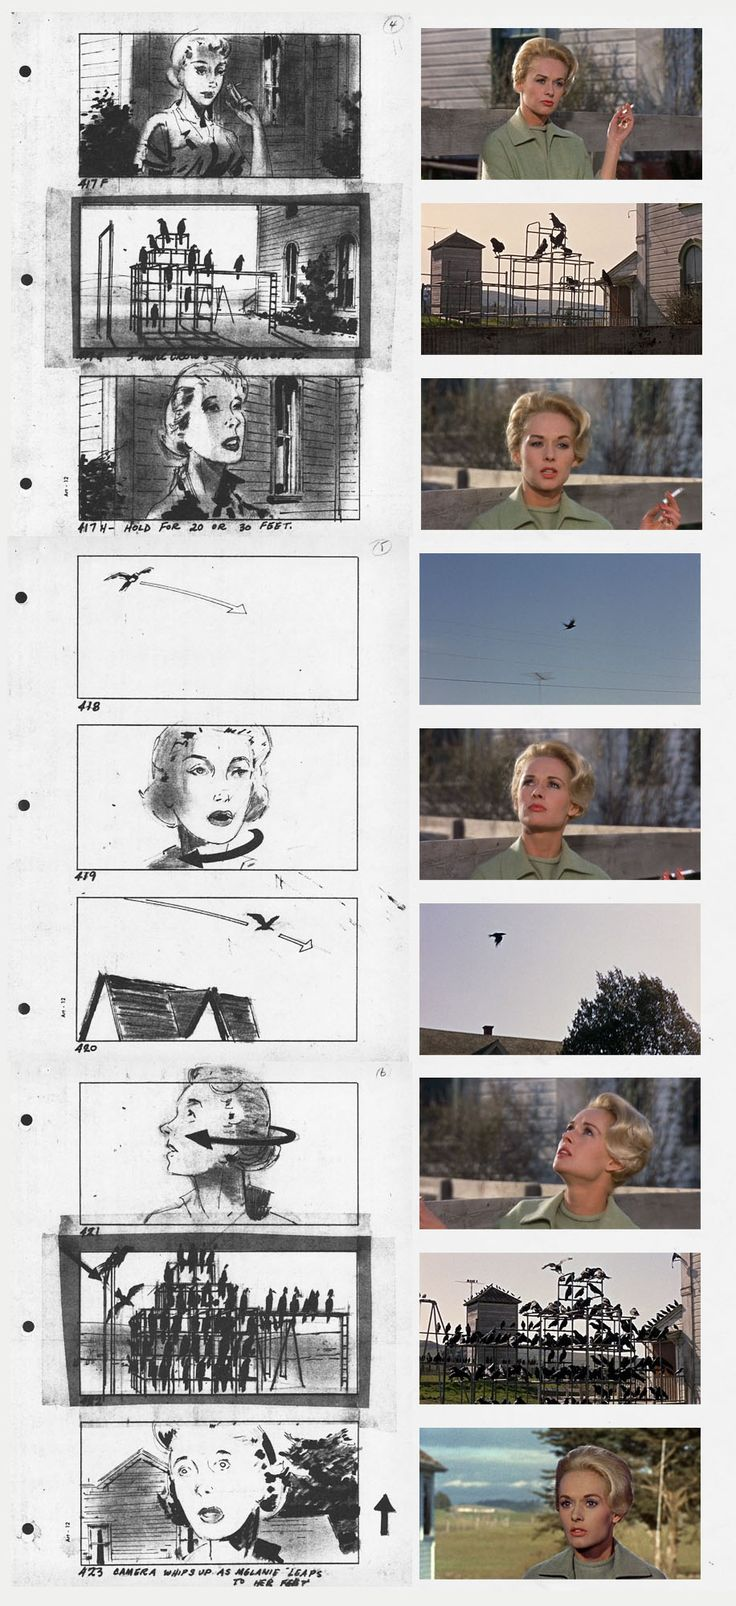 Storyboards for Alfred Hitchcock's The Birds. This is very cool - the still photos match the storyboard drawings. Woman is nearly always central and gives a balanced picture plane, depicting some calm. Birds are not evil yet, only one still shows them in black contrast to background. Women's Jewelry - http://amzn.to/2j8unq8